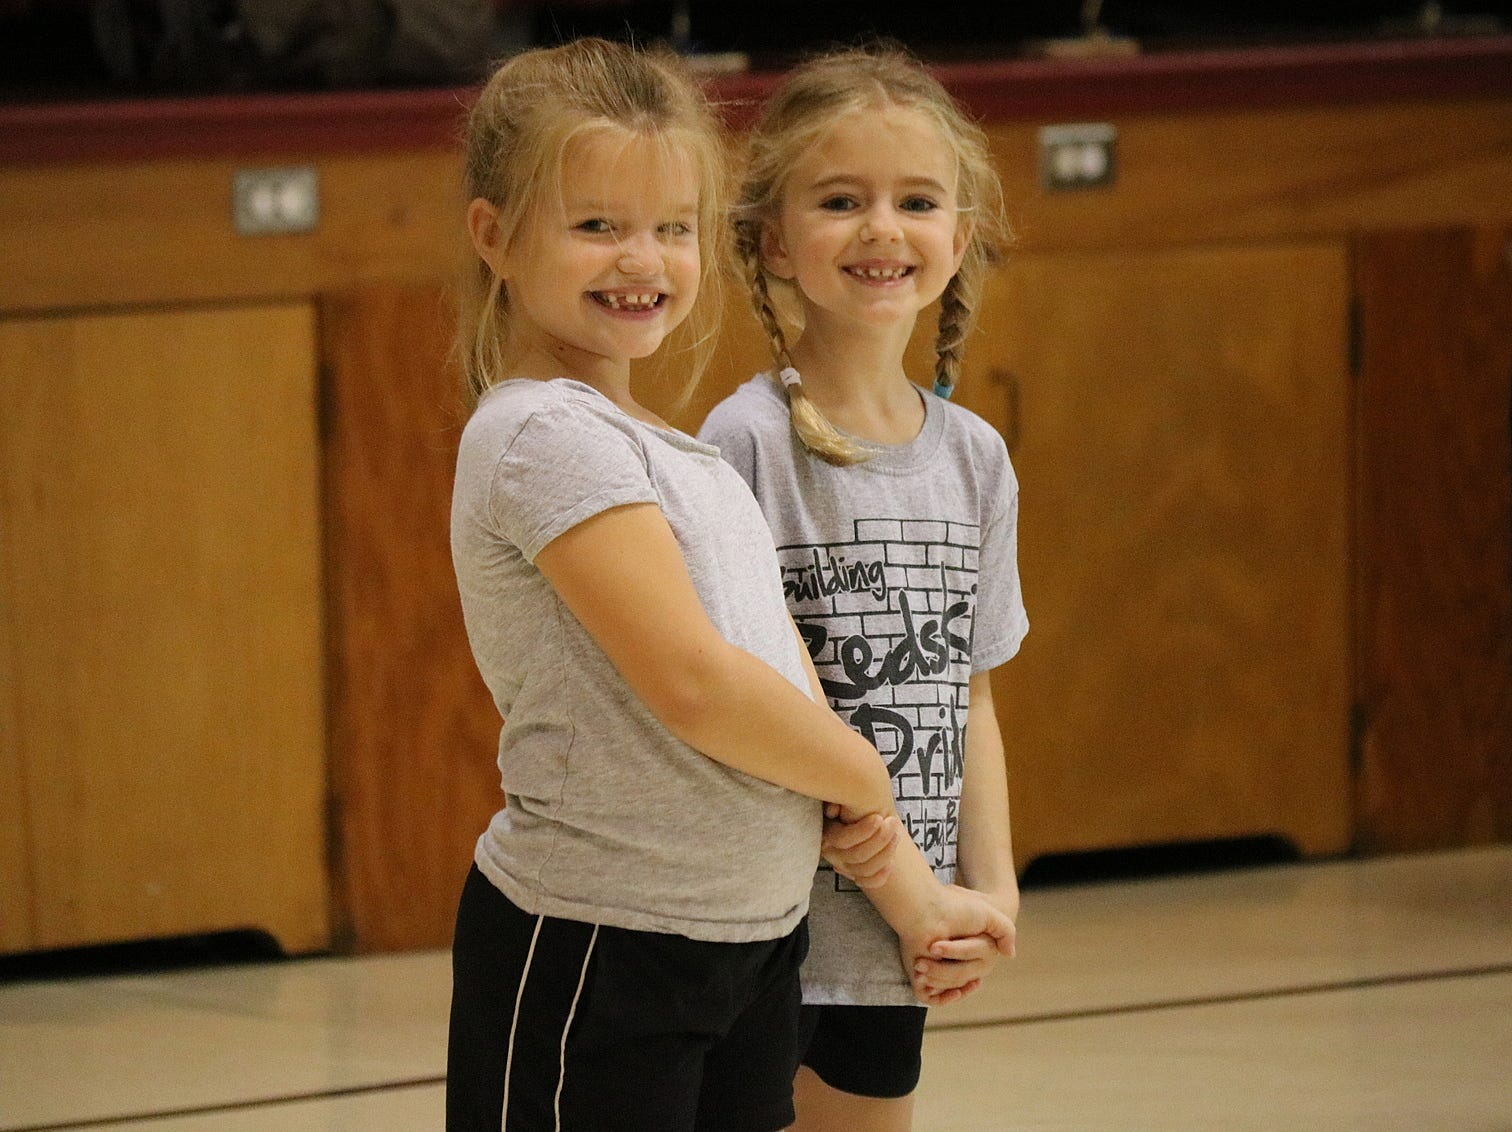 Micaela Wiechman and Suzanna Osborne, second graders at Immaculate Conception School, prepare to promenade during a square dance lesson on Wednesday.